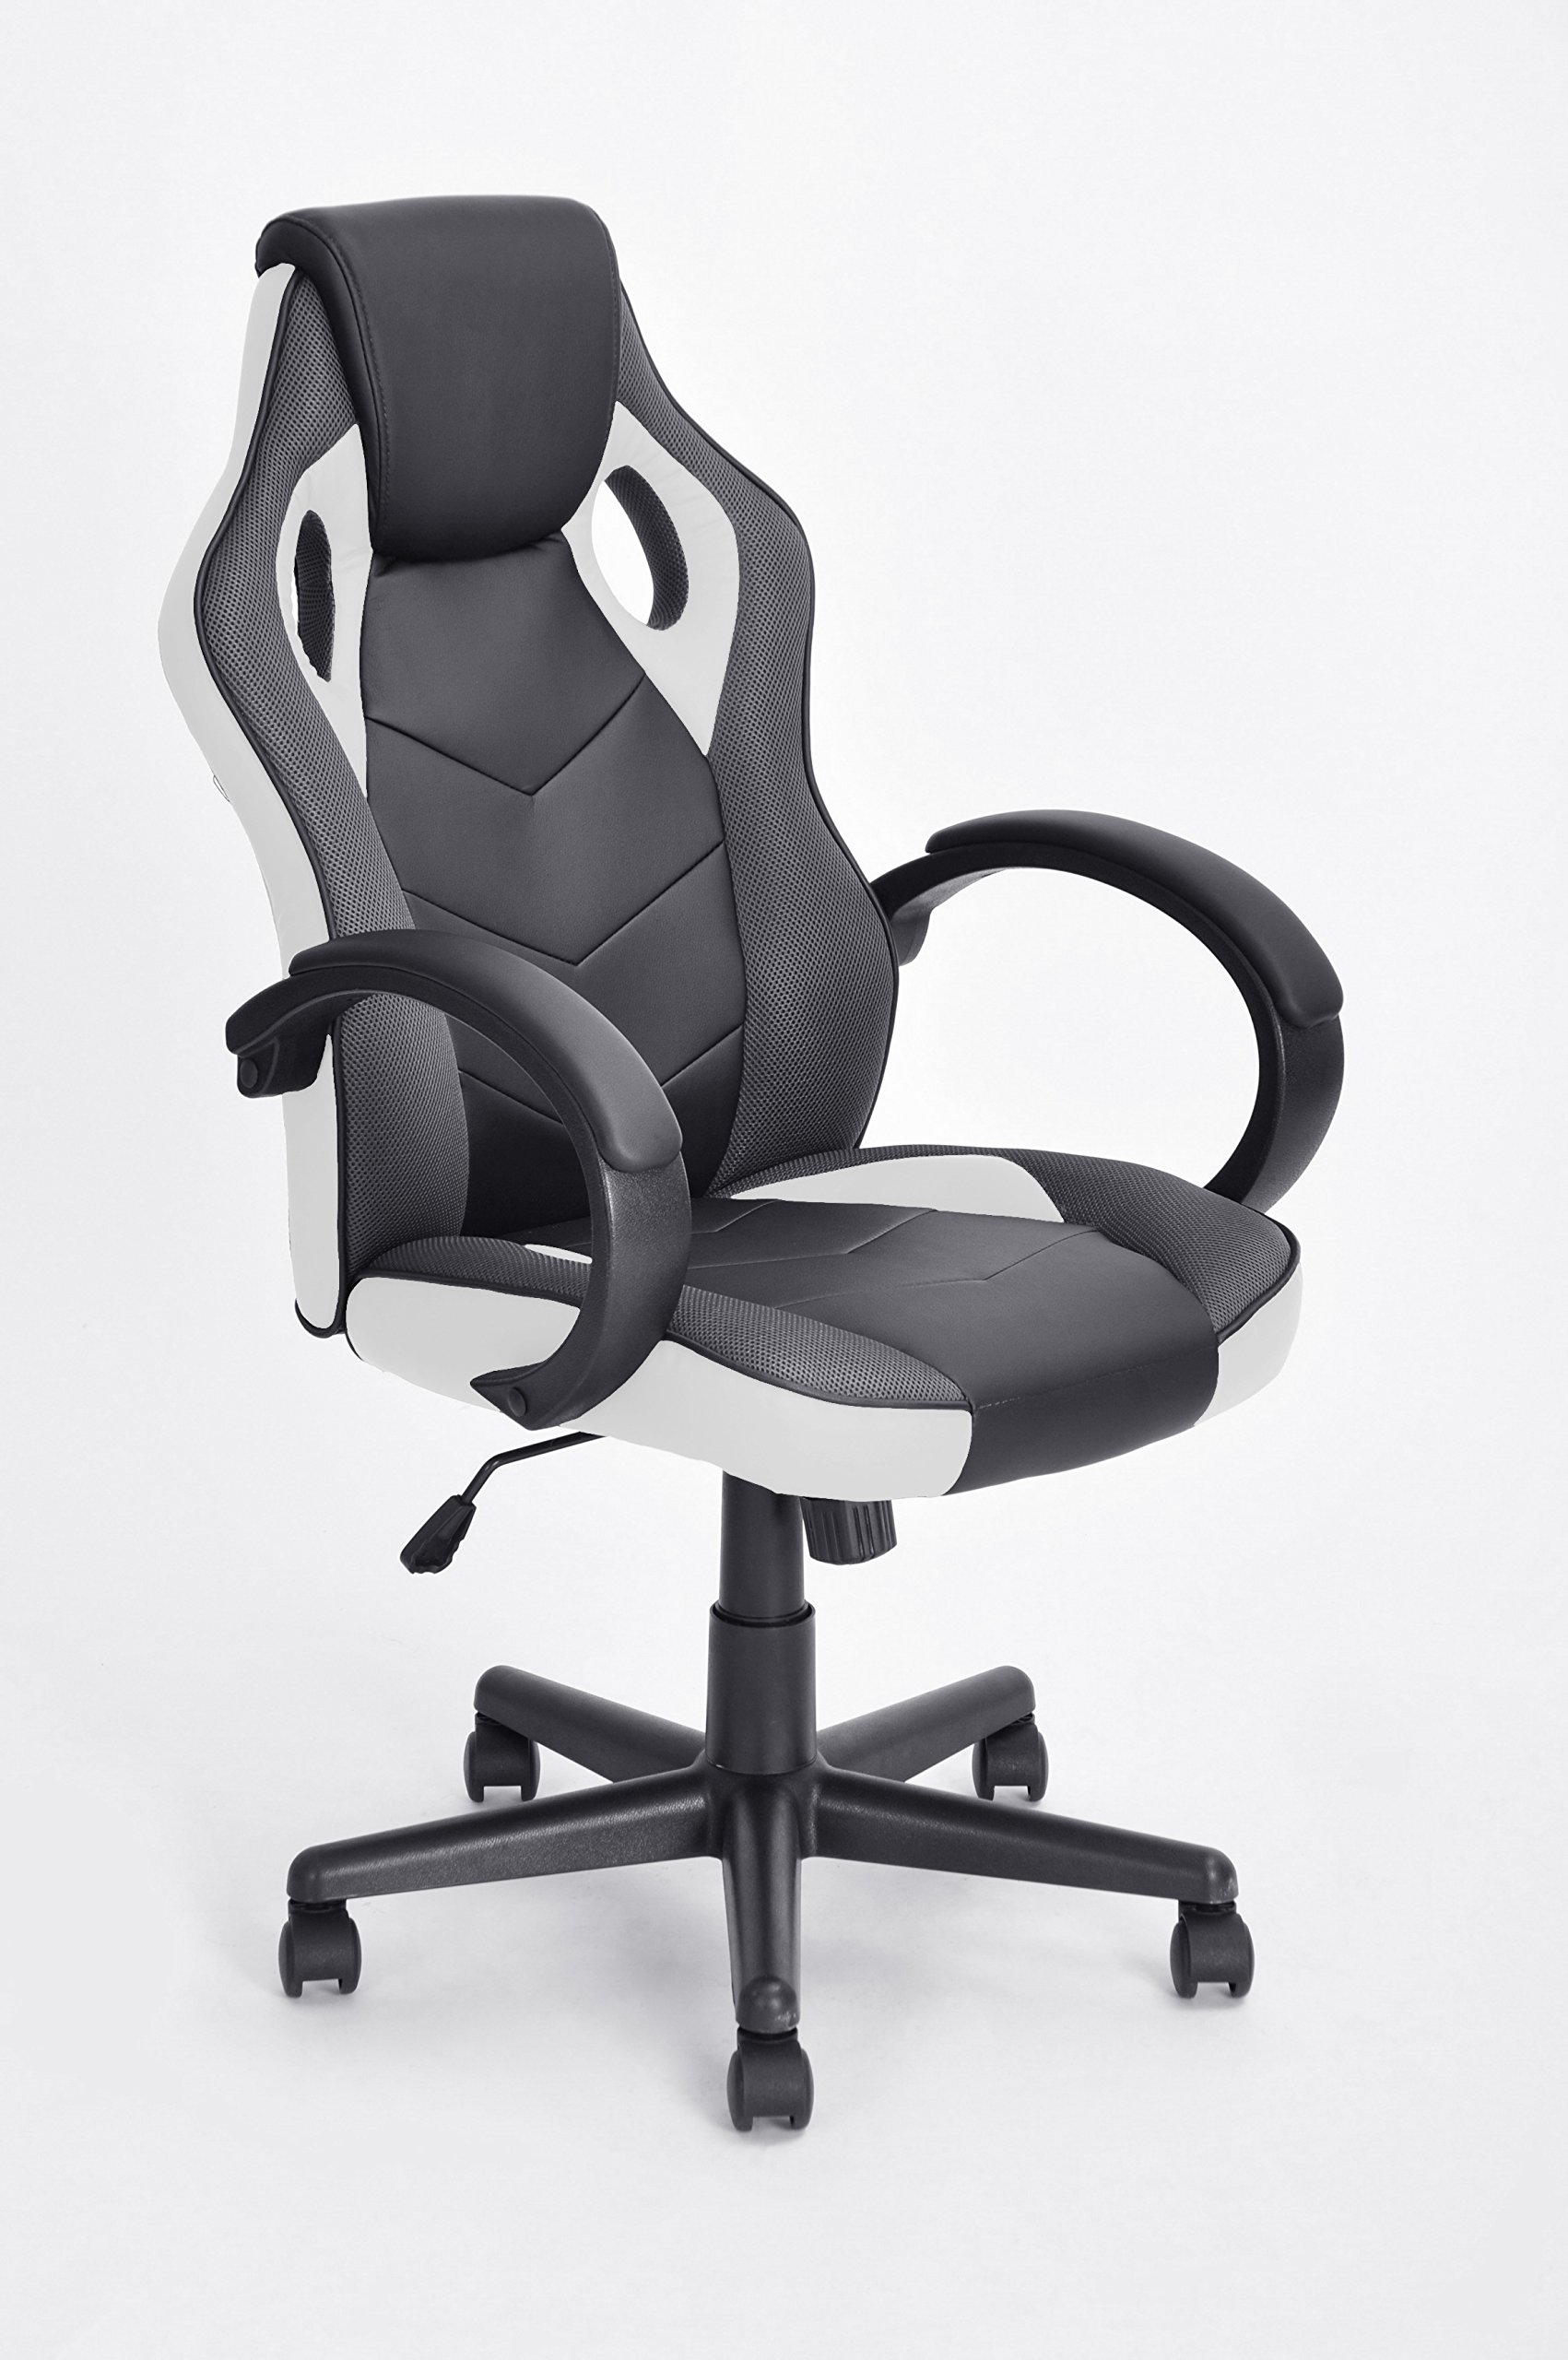 Executive Racing Style Office Chair PU Leather Swivel Computer Desk Seat High-Back Gaming Chair in Black and White